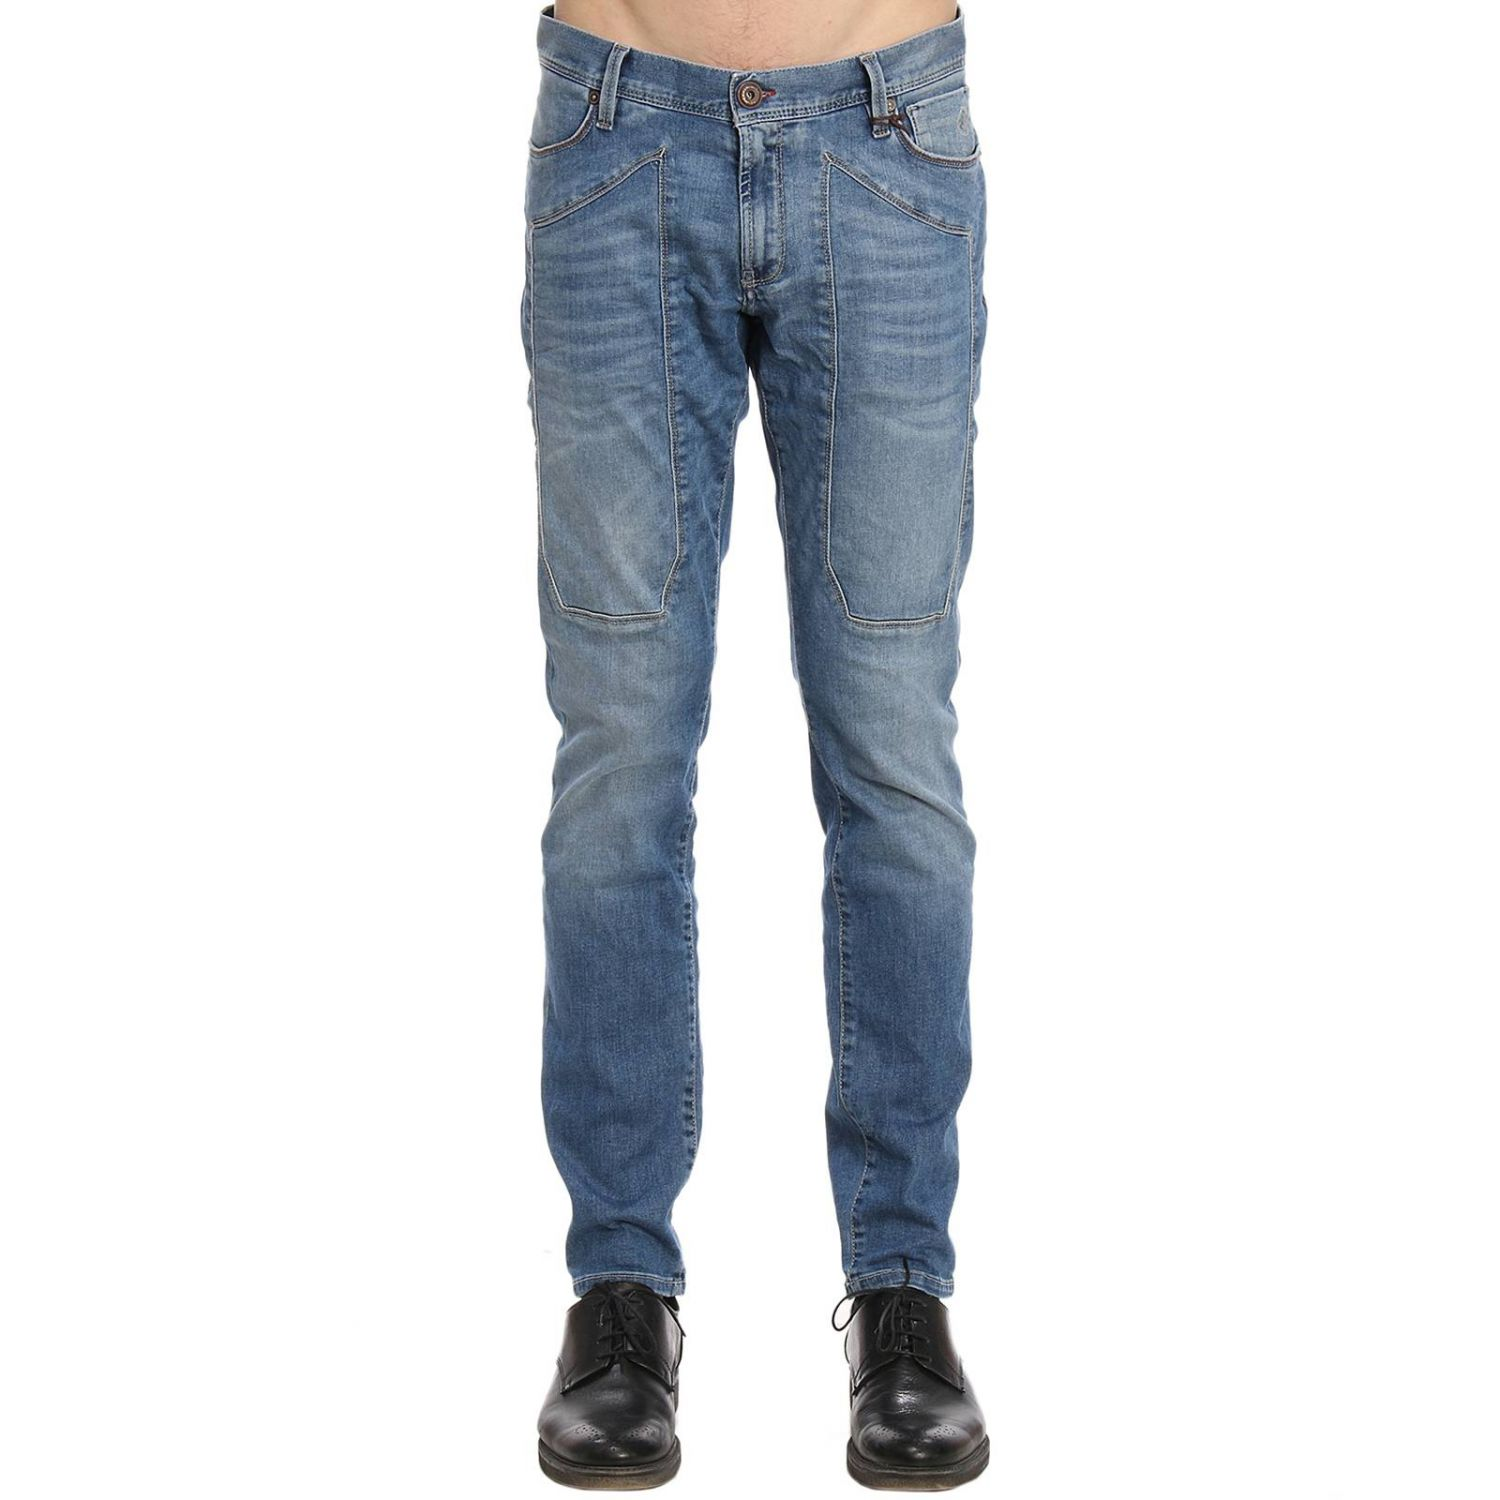 Jeans Jeans Men Jeckerson 8330008